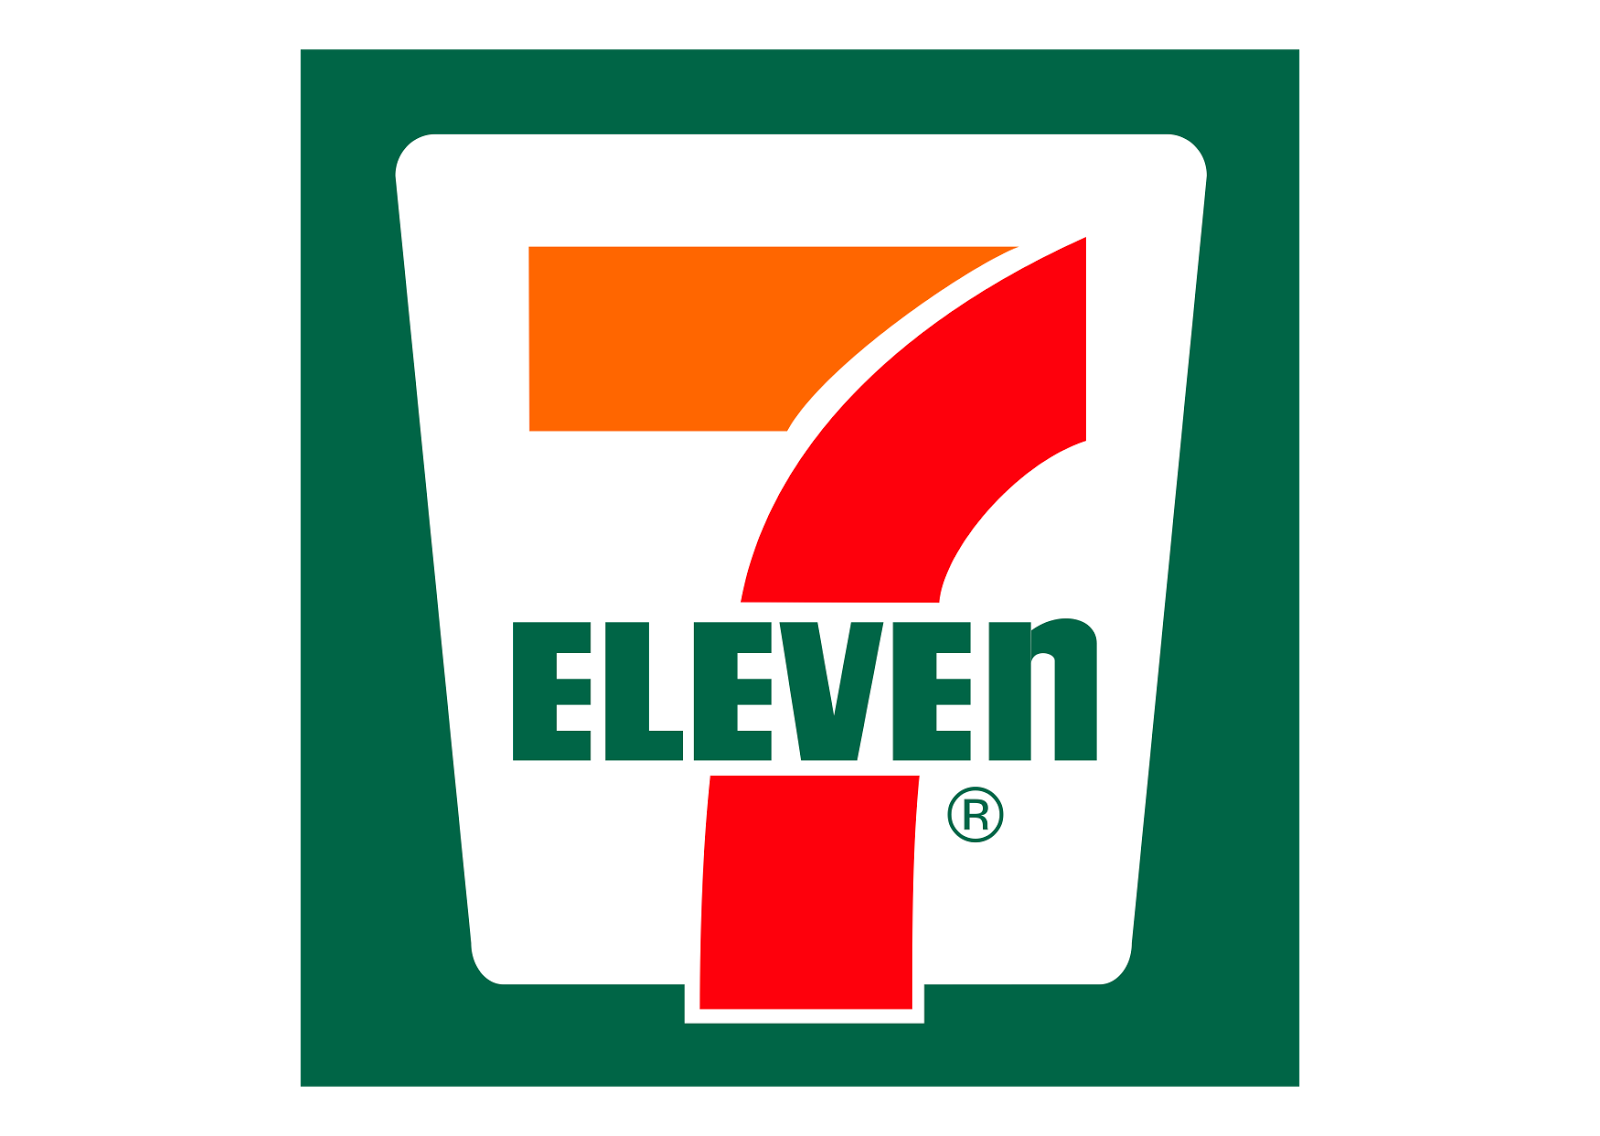 7 Eleven Logo Vector download free